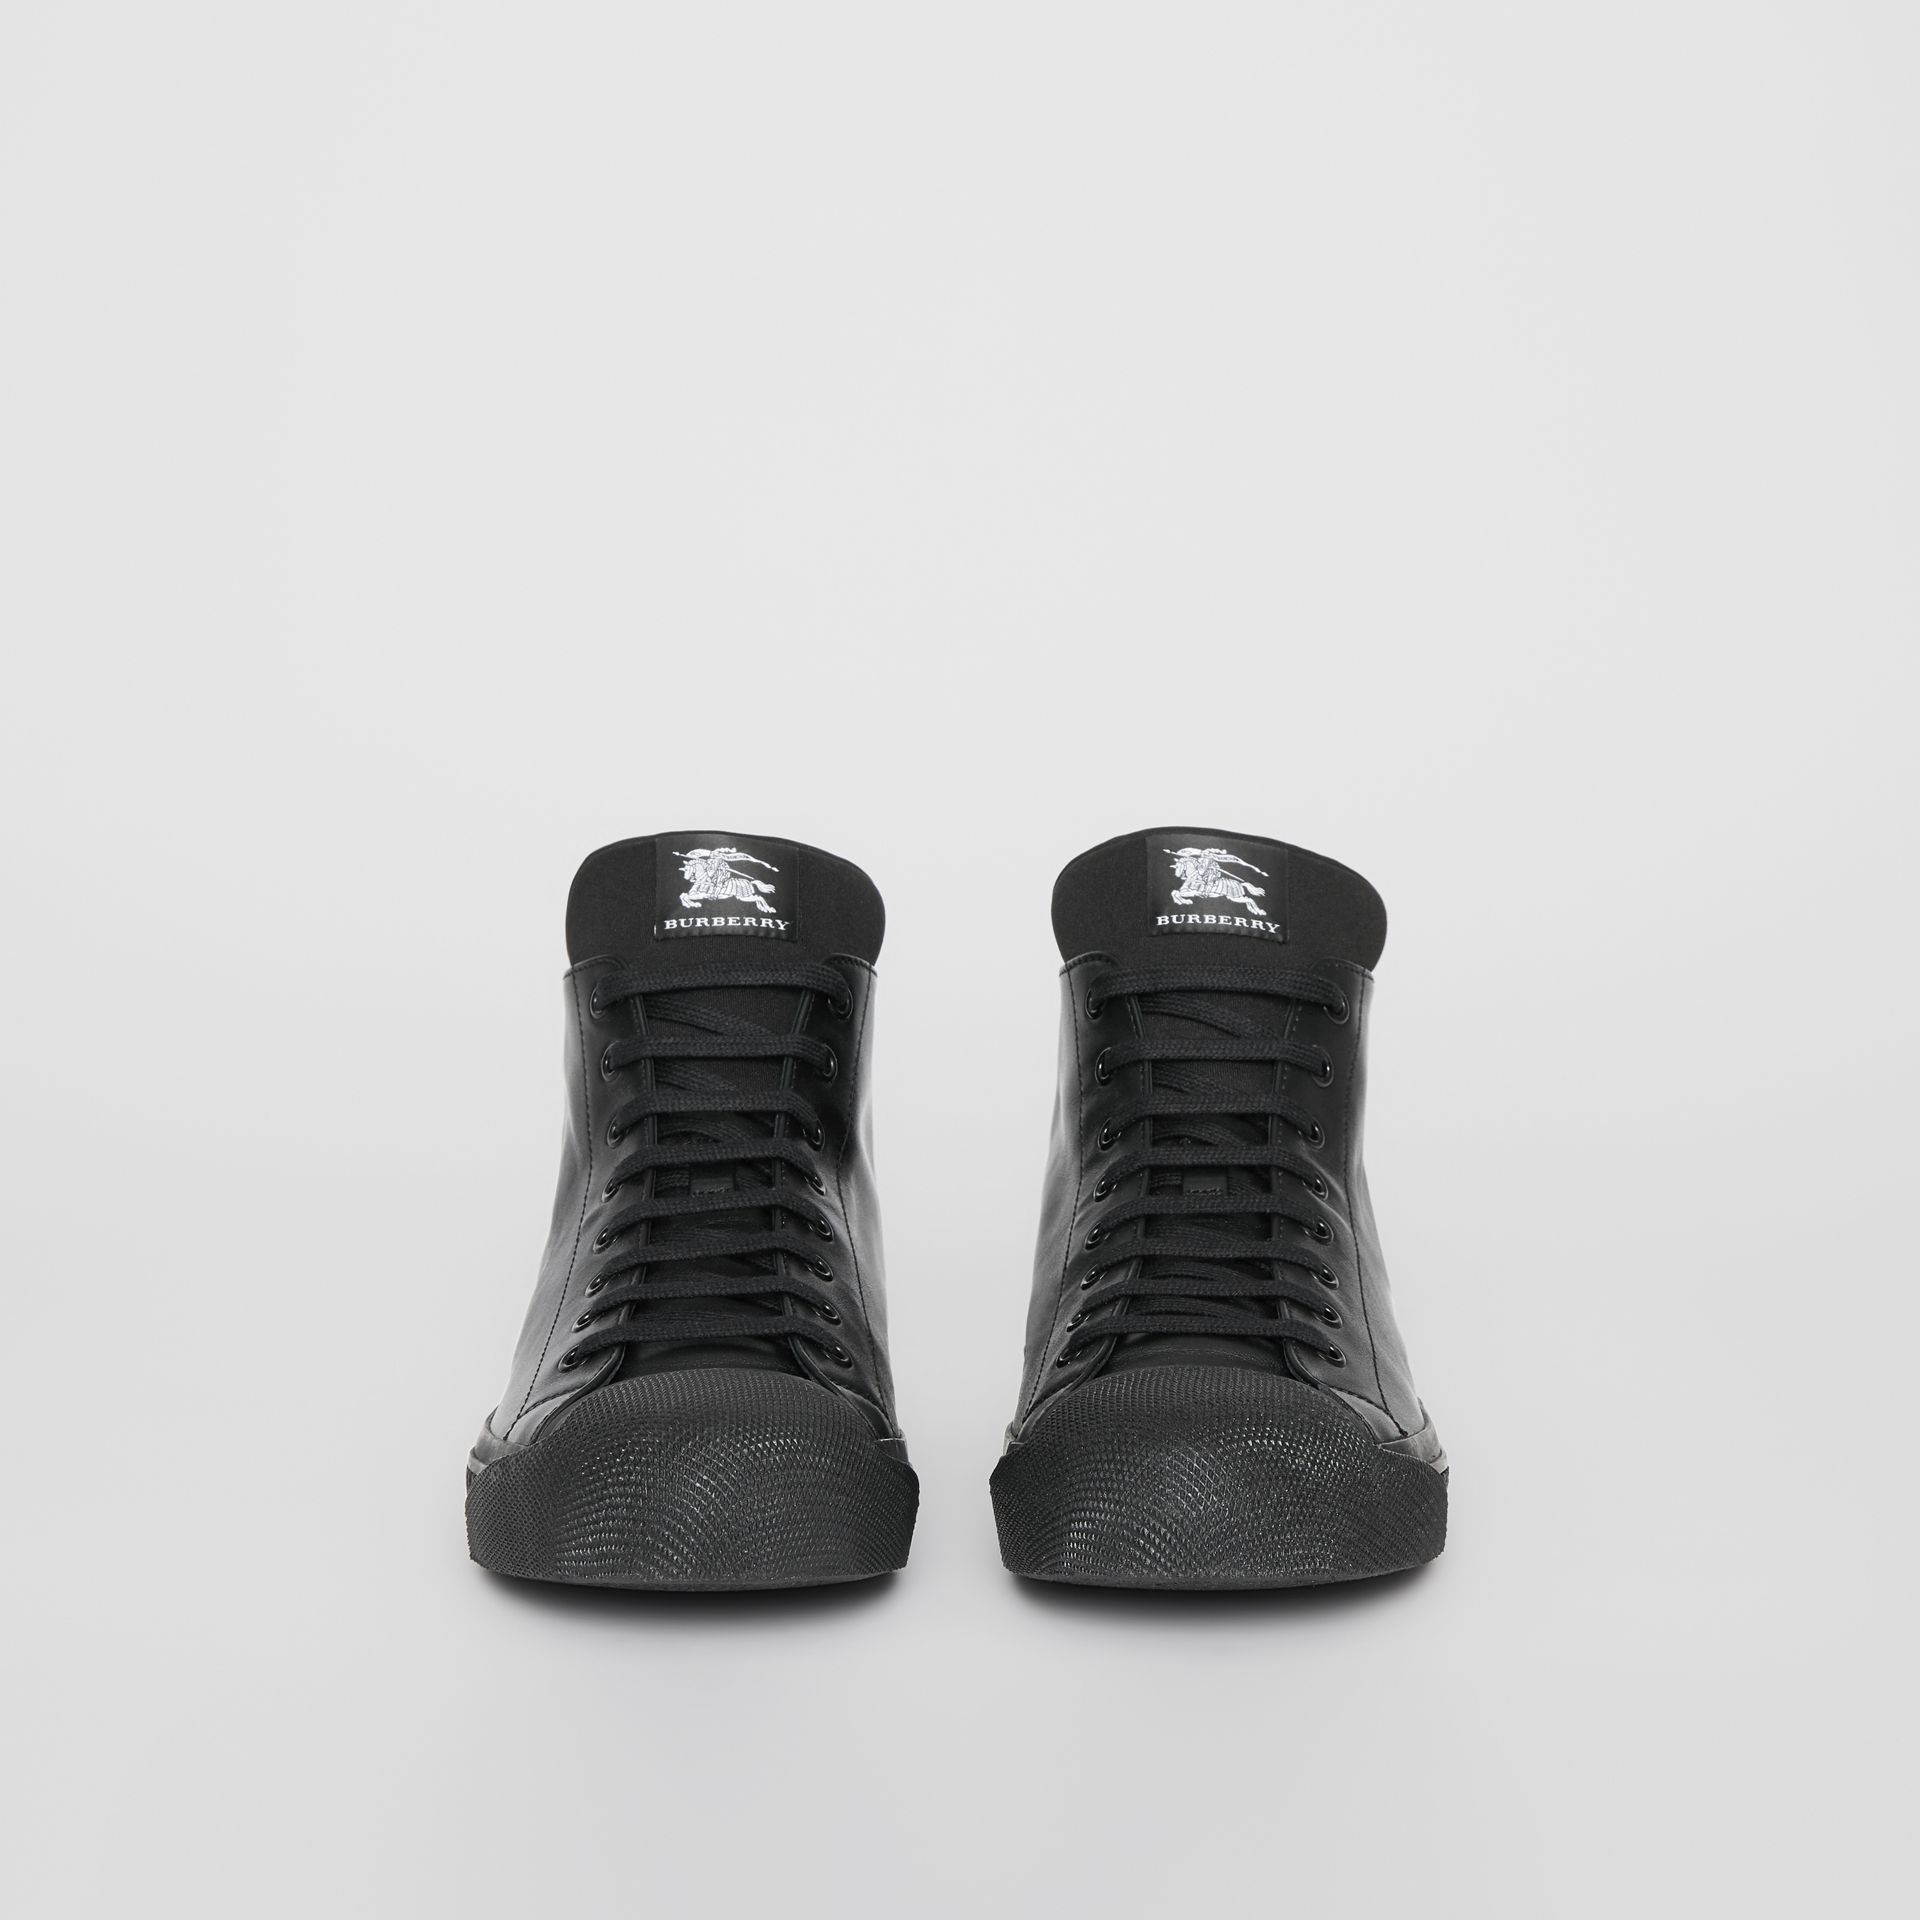 Leather and Neoprene High-top Sneakers in Black - Men | Burberry - gallery image 3